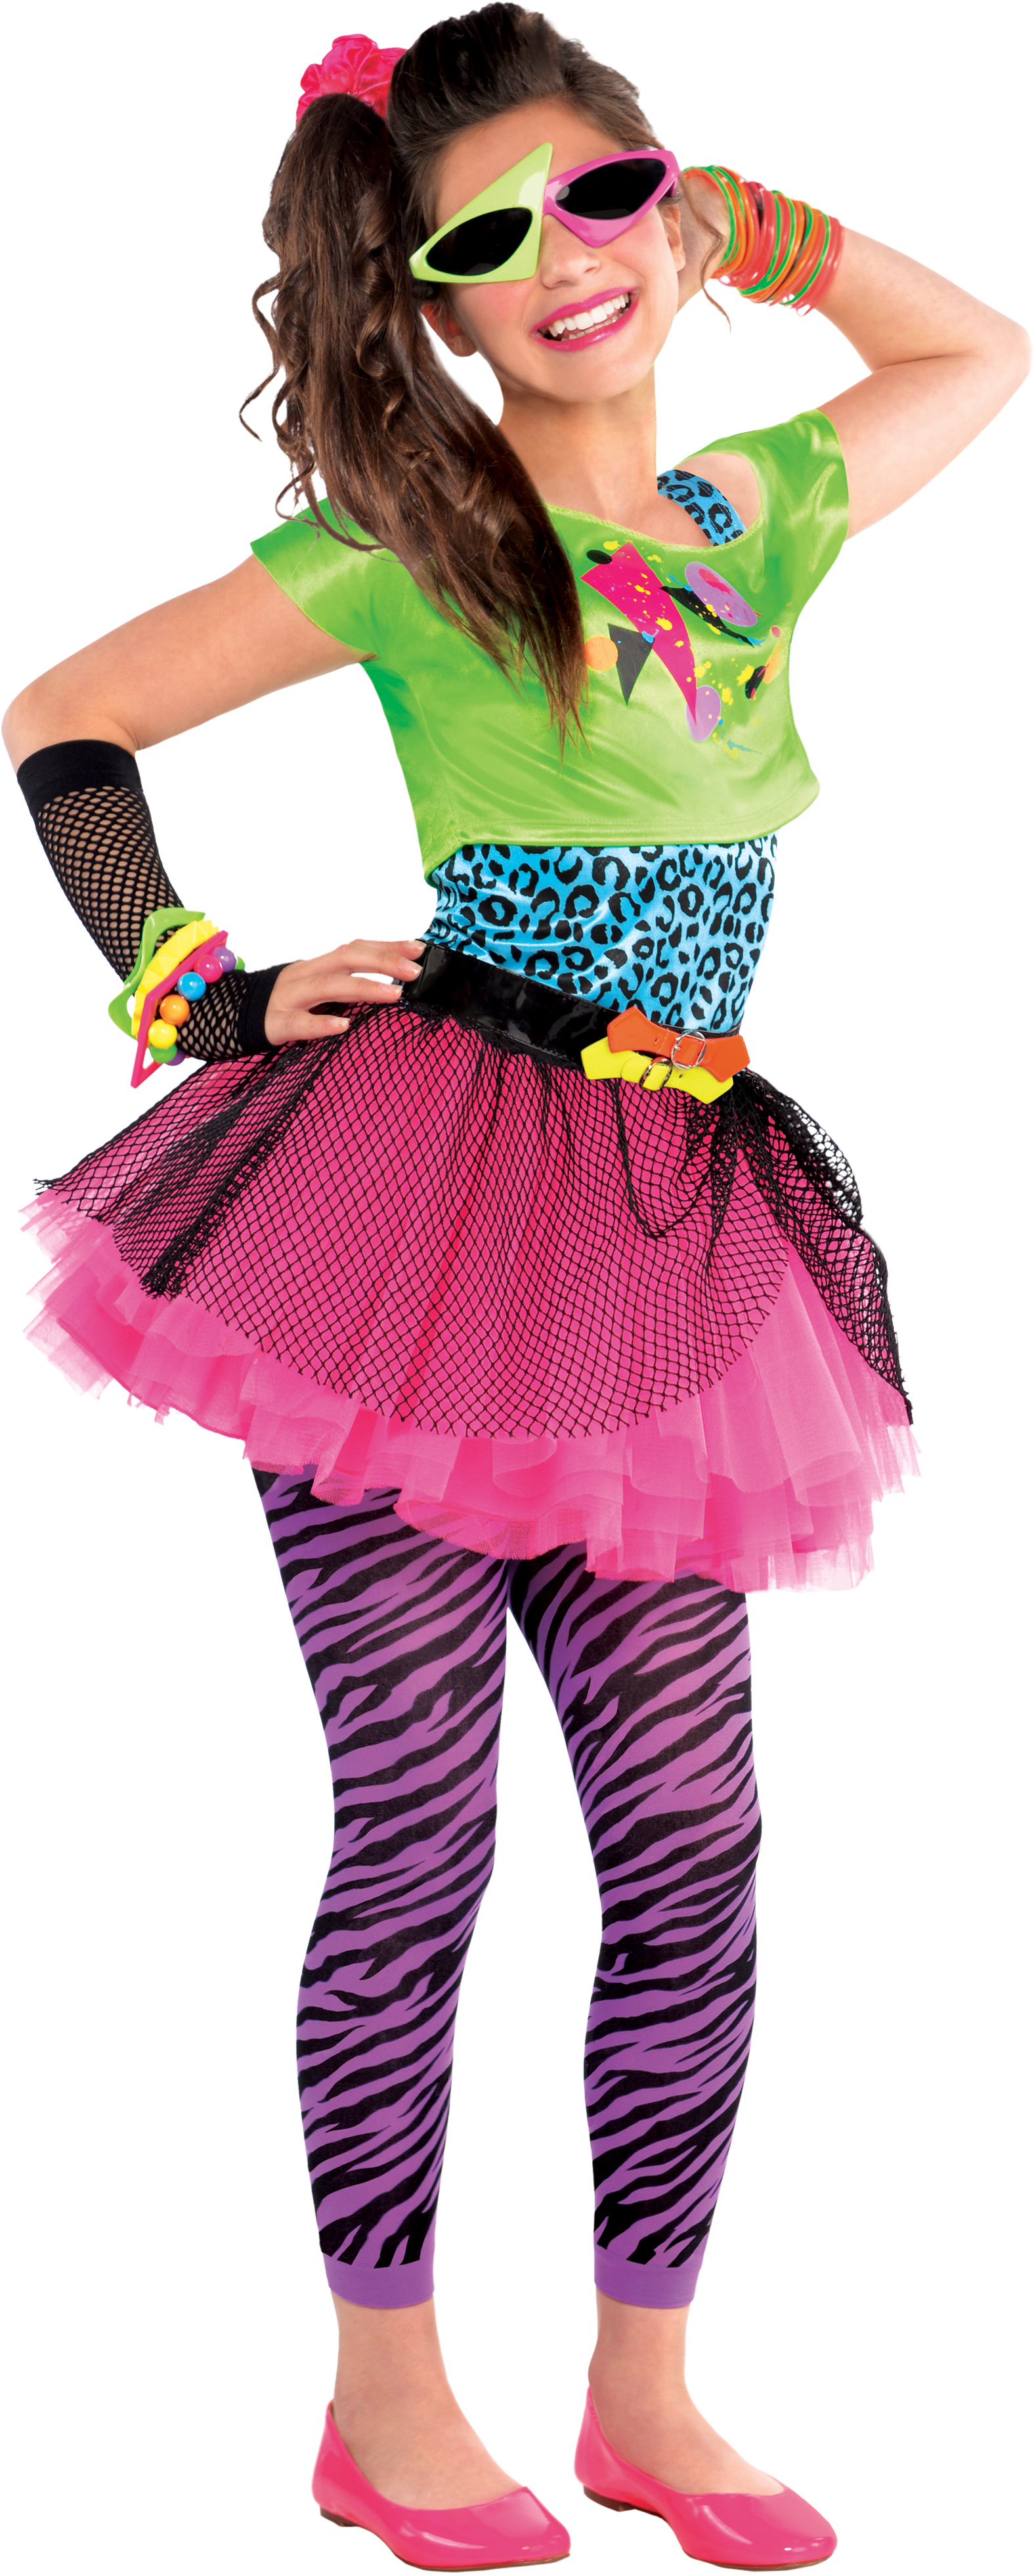 sale teen 80s totally awesome girls fancy dress costume. Black Bedroom Furniture Sets. Home Design Ideas